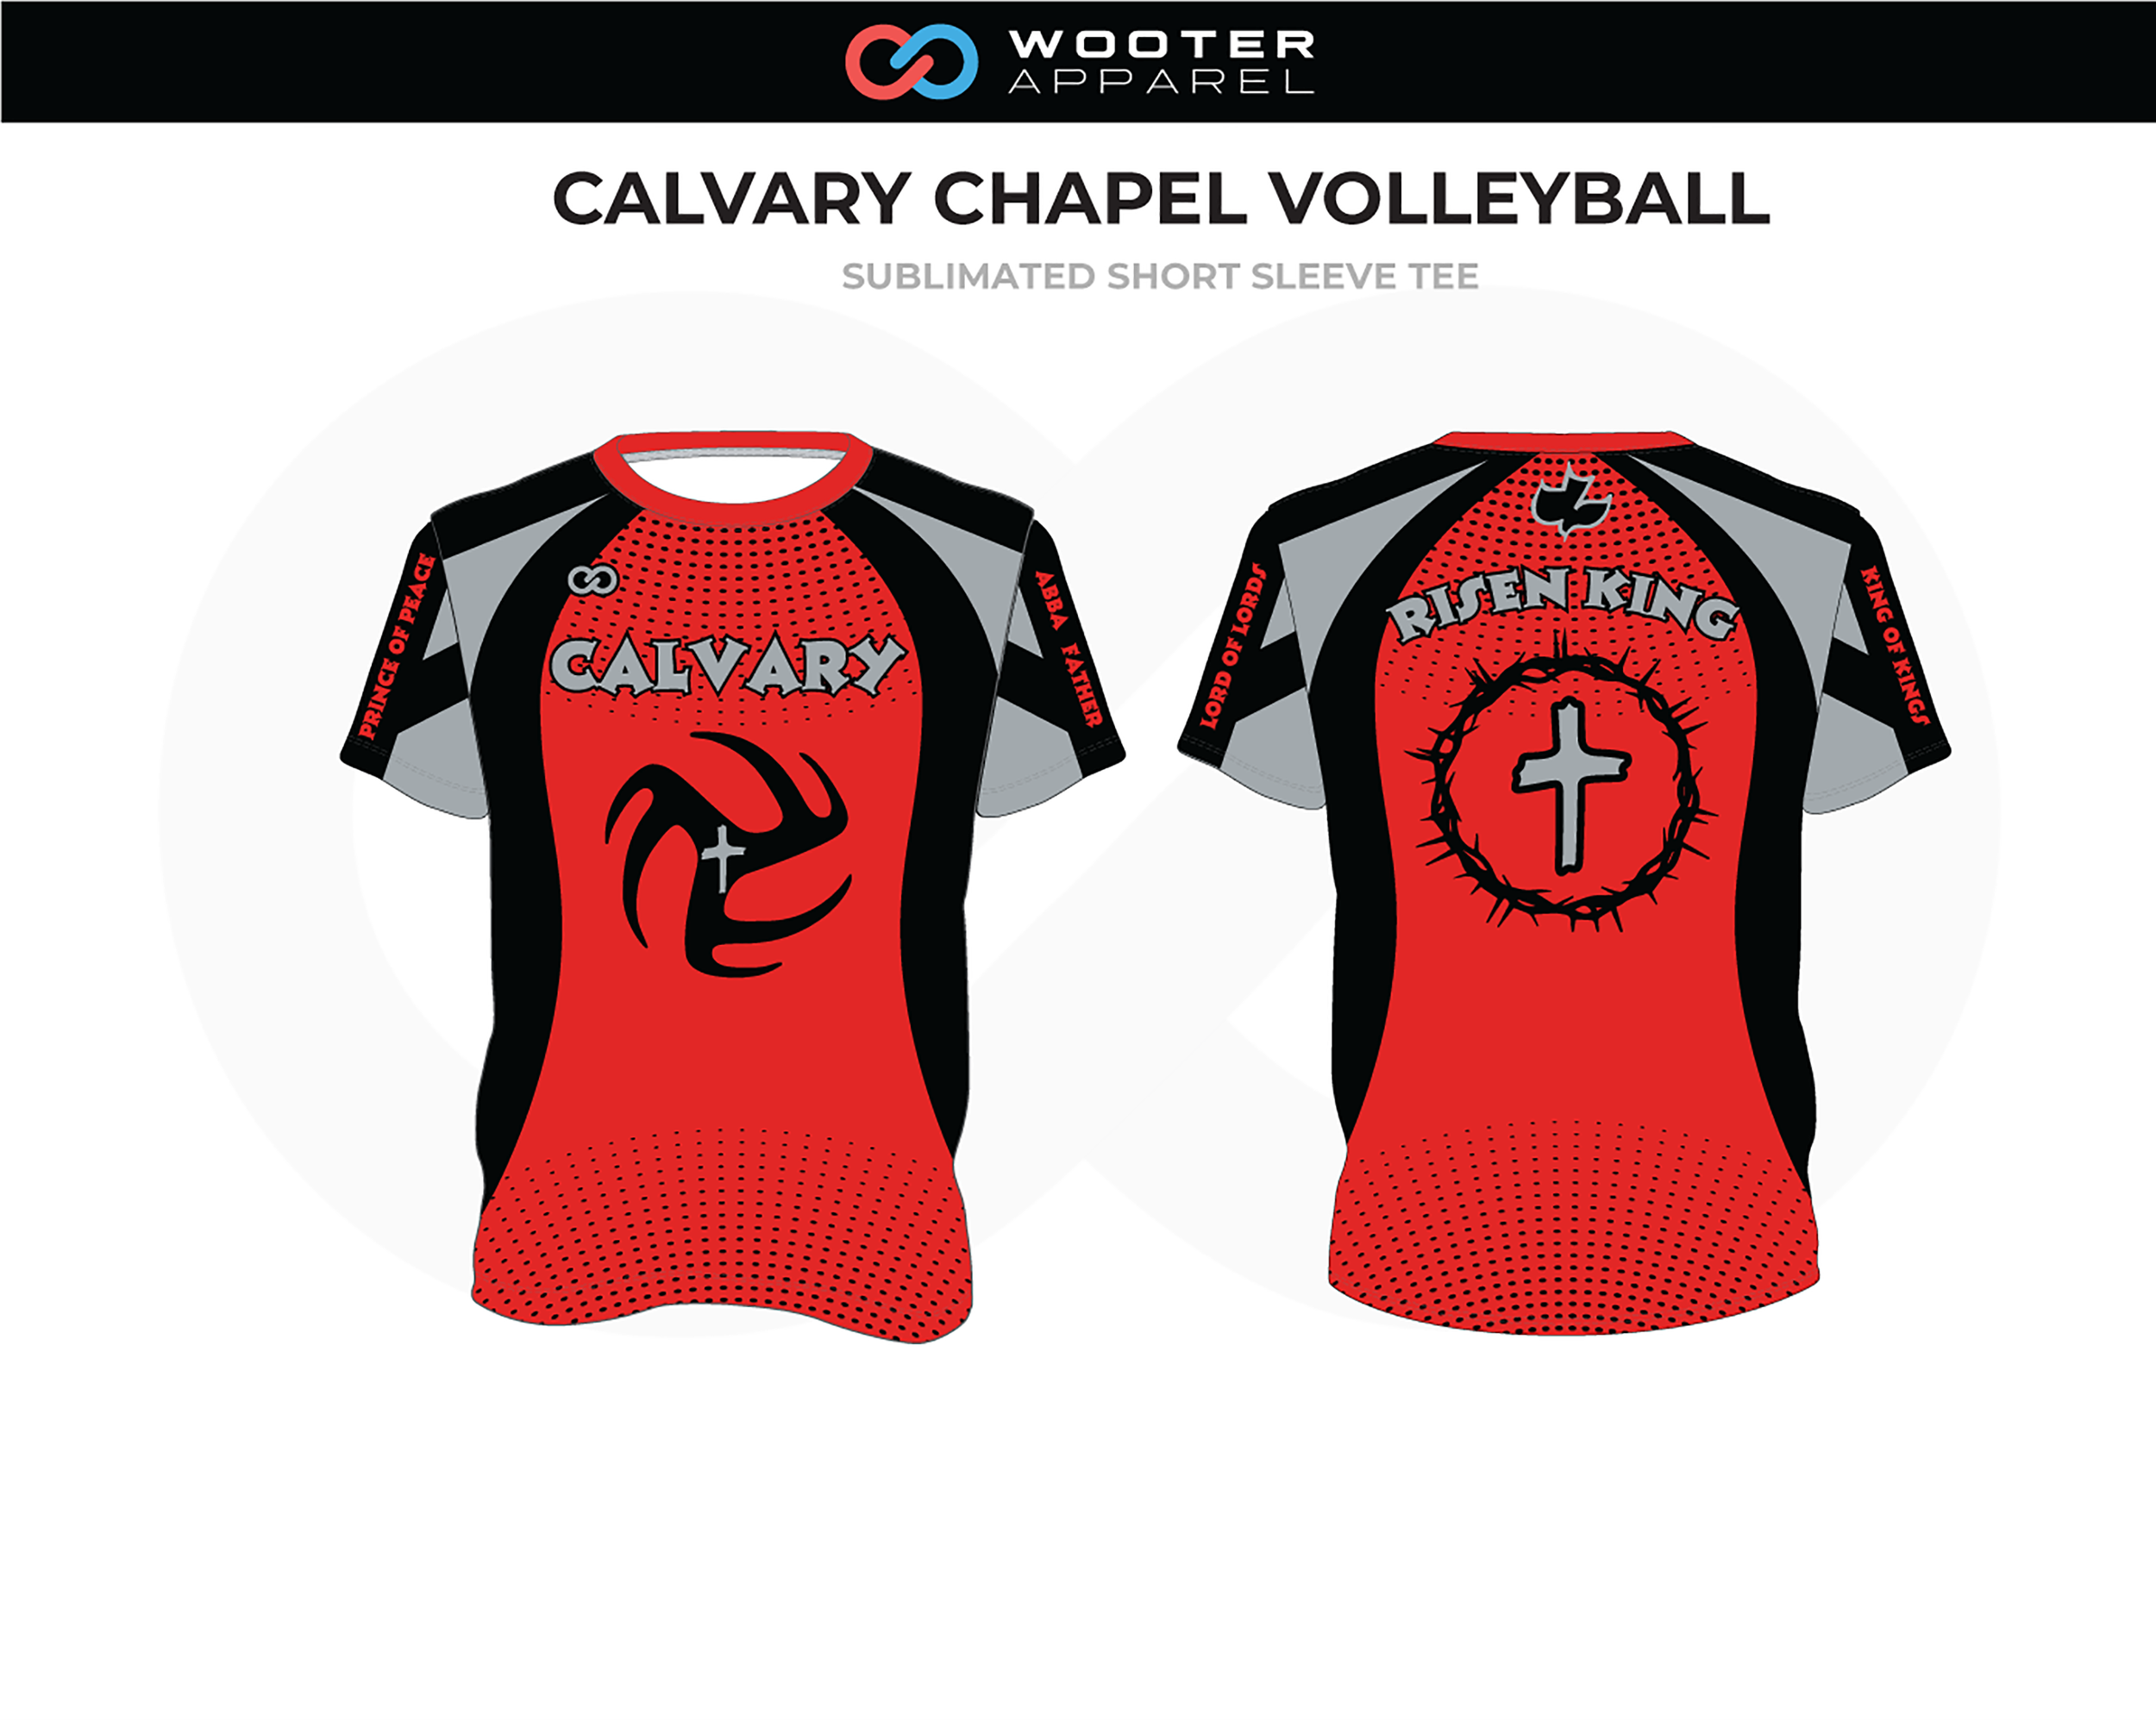 fd817037d Volleyball Designs — Wooter Apparel | Team Uniforms and Custom ...